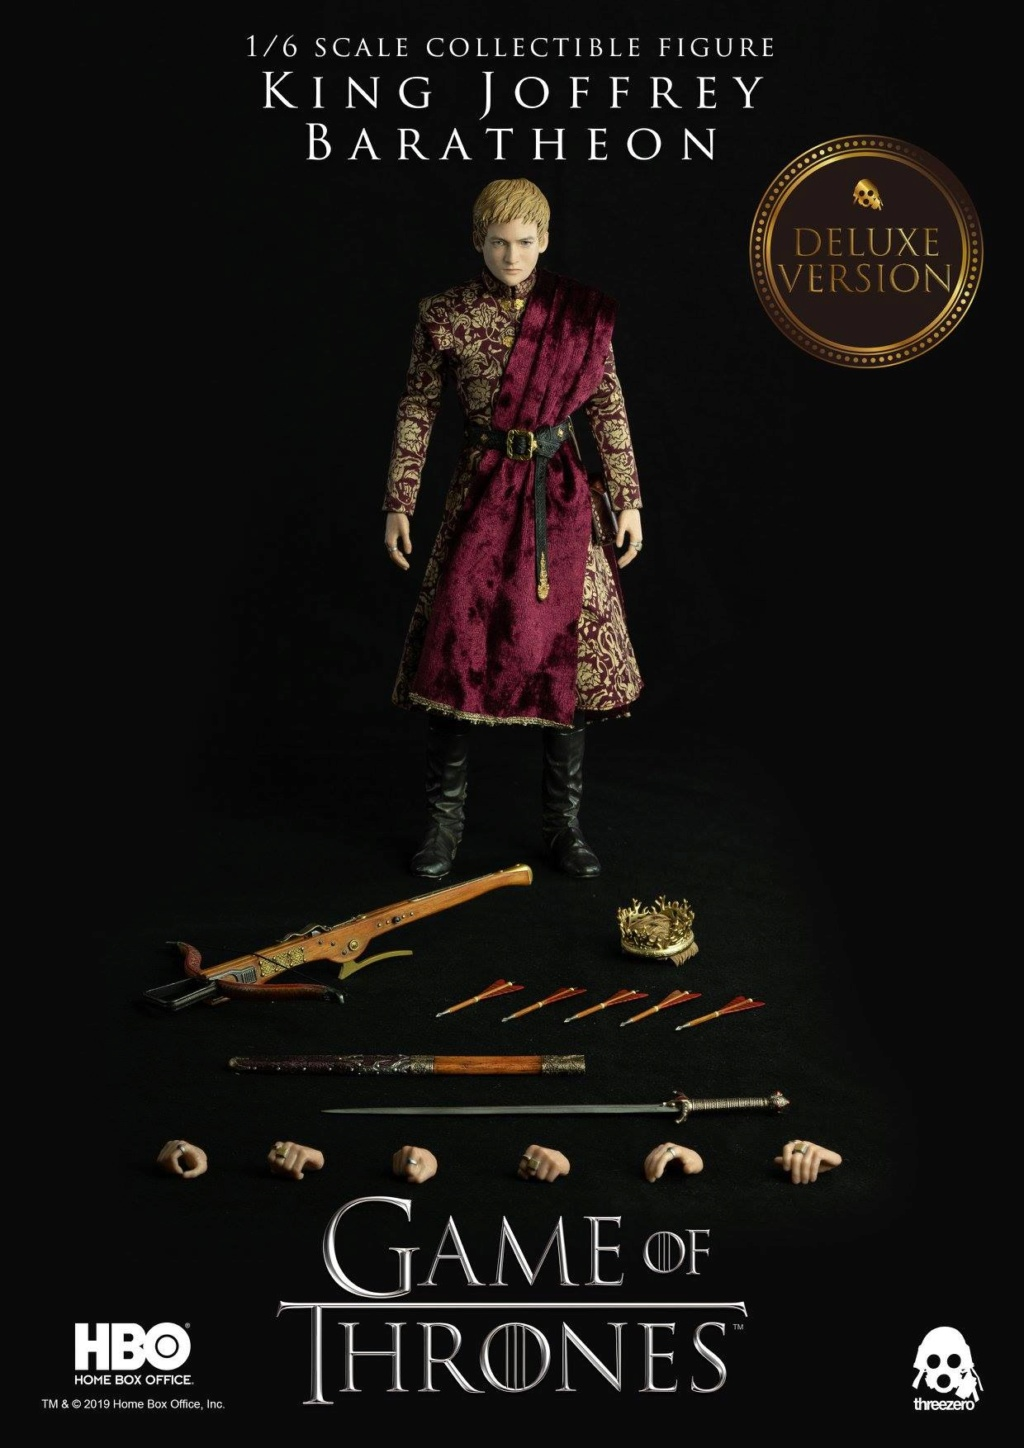 TVShow - NEW PRODUCT: ThreeZero: 1/6 scale Game of Thrones – King Joffrey Baratheon (Standard edition) & (Deluxe Edition) (UPDATED) 18484110